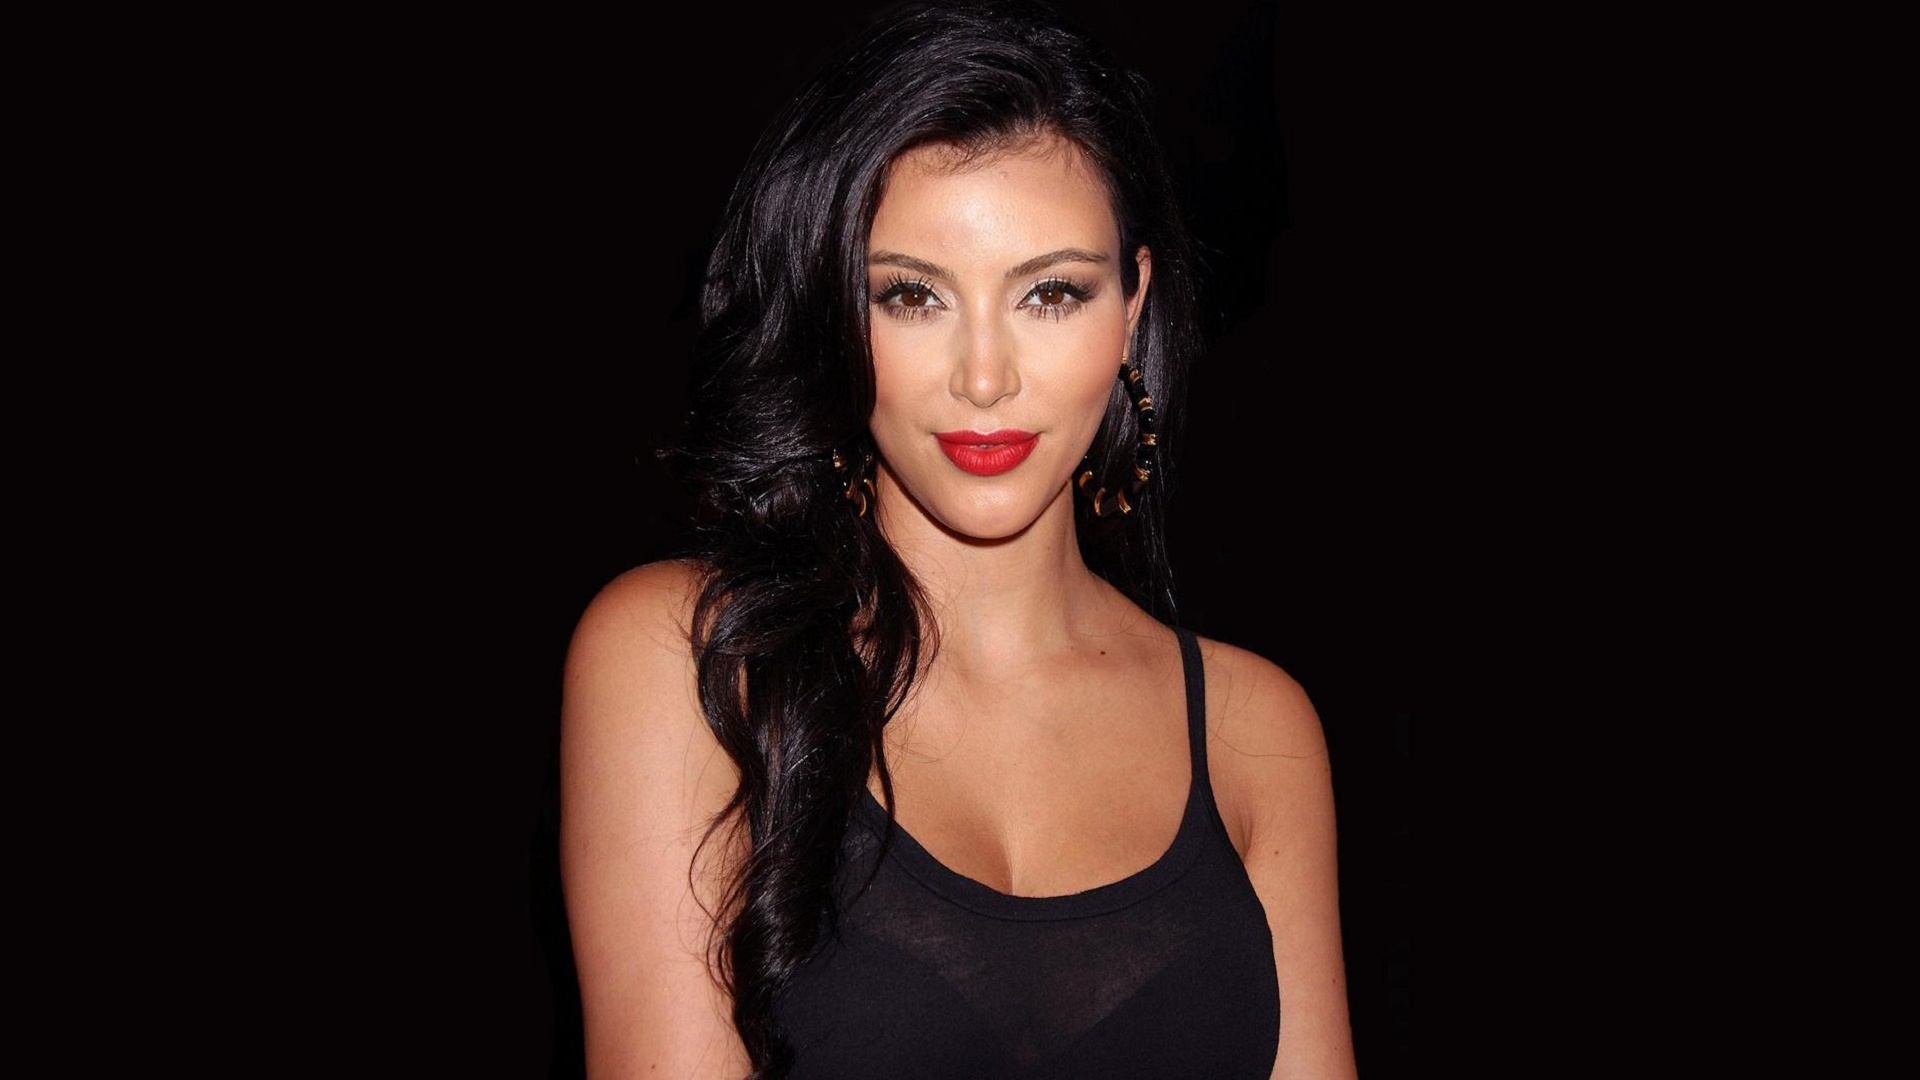 Kim Kardashian Wallpapers Images Photos Pictures Backgrounds 1920x1080